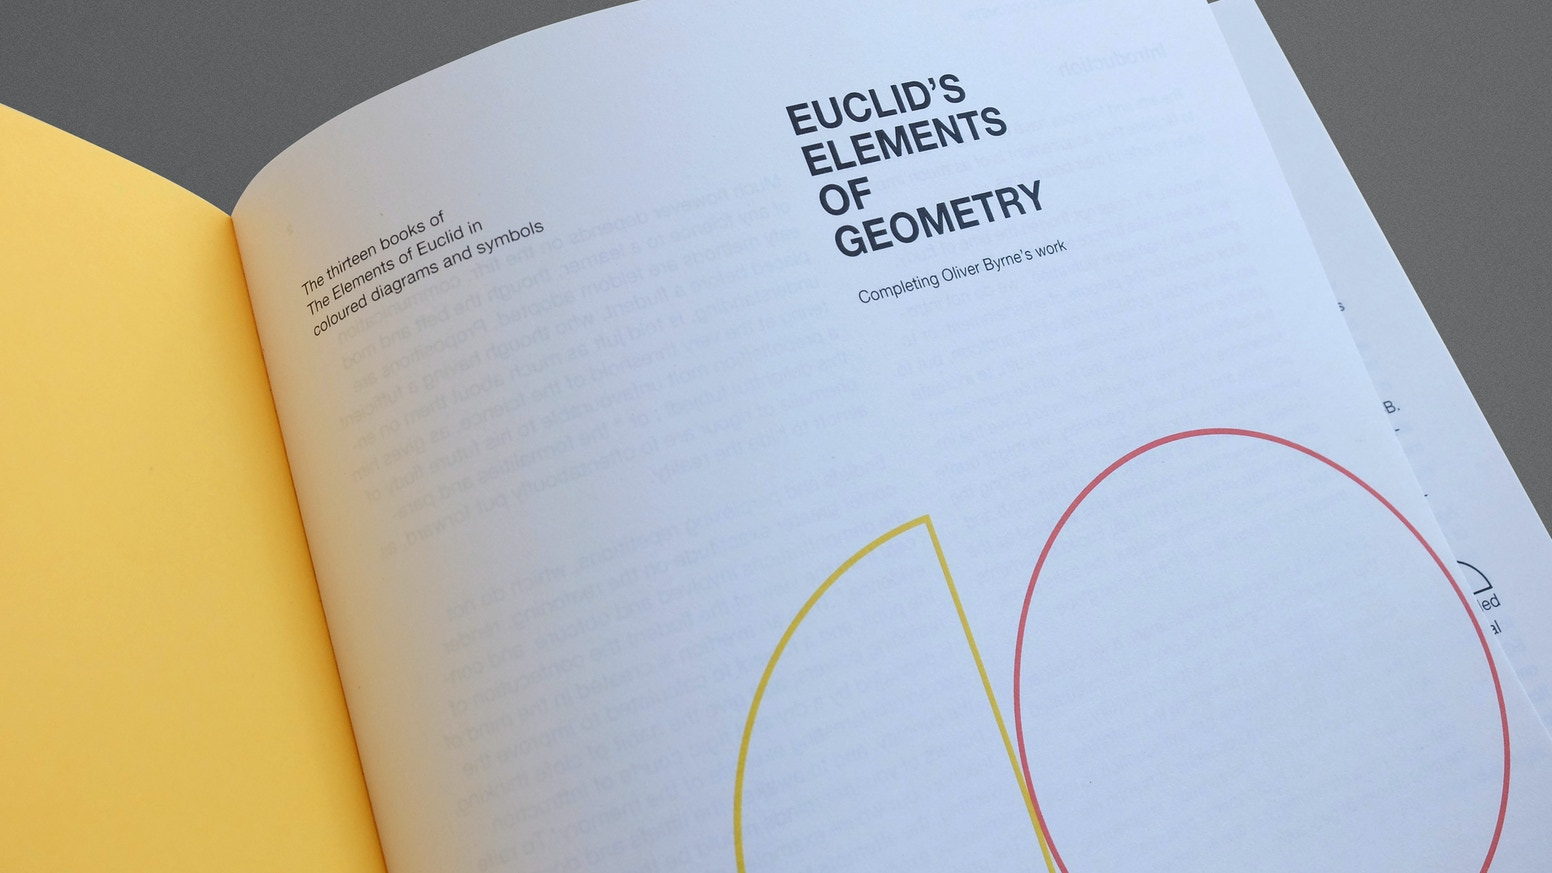 euclid s elements completing oliver byrne s work by kronecker